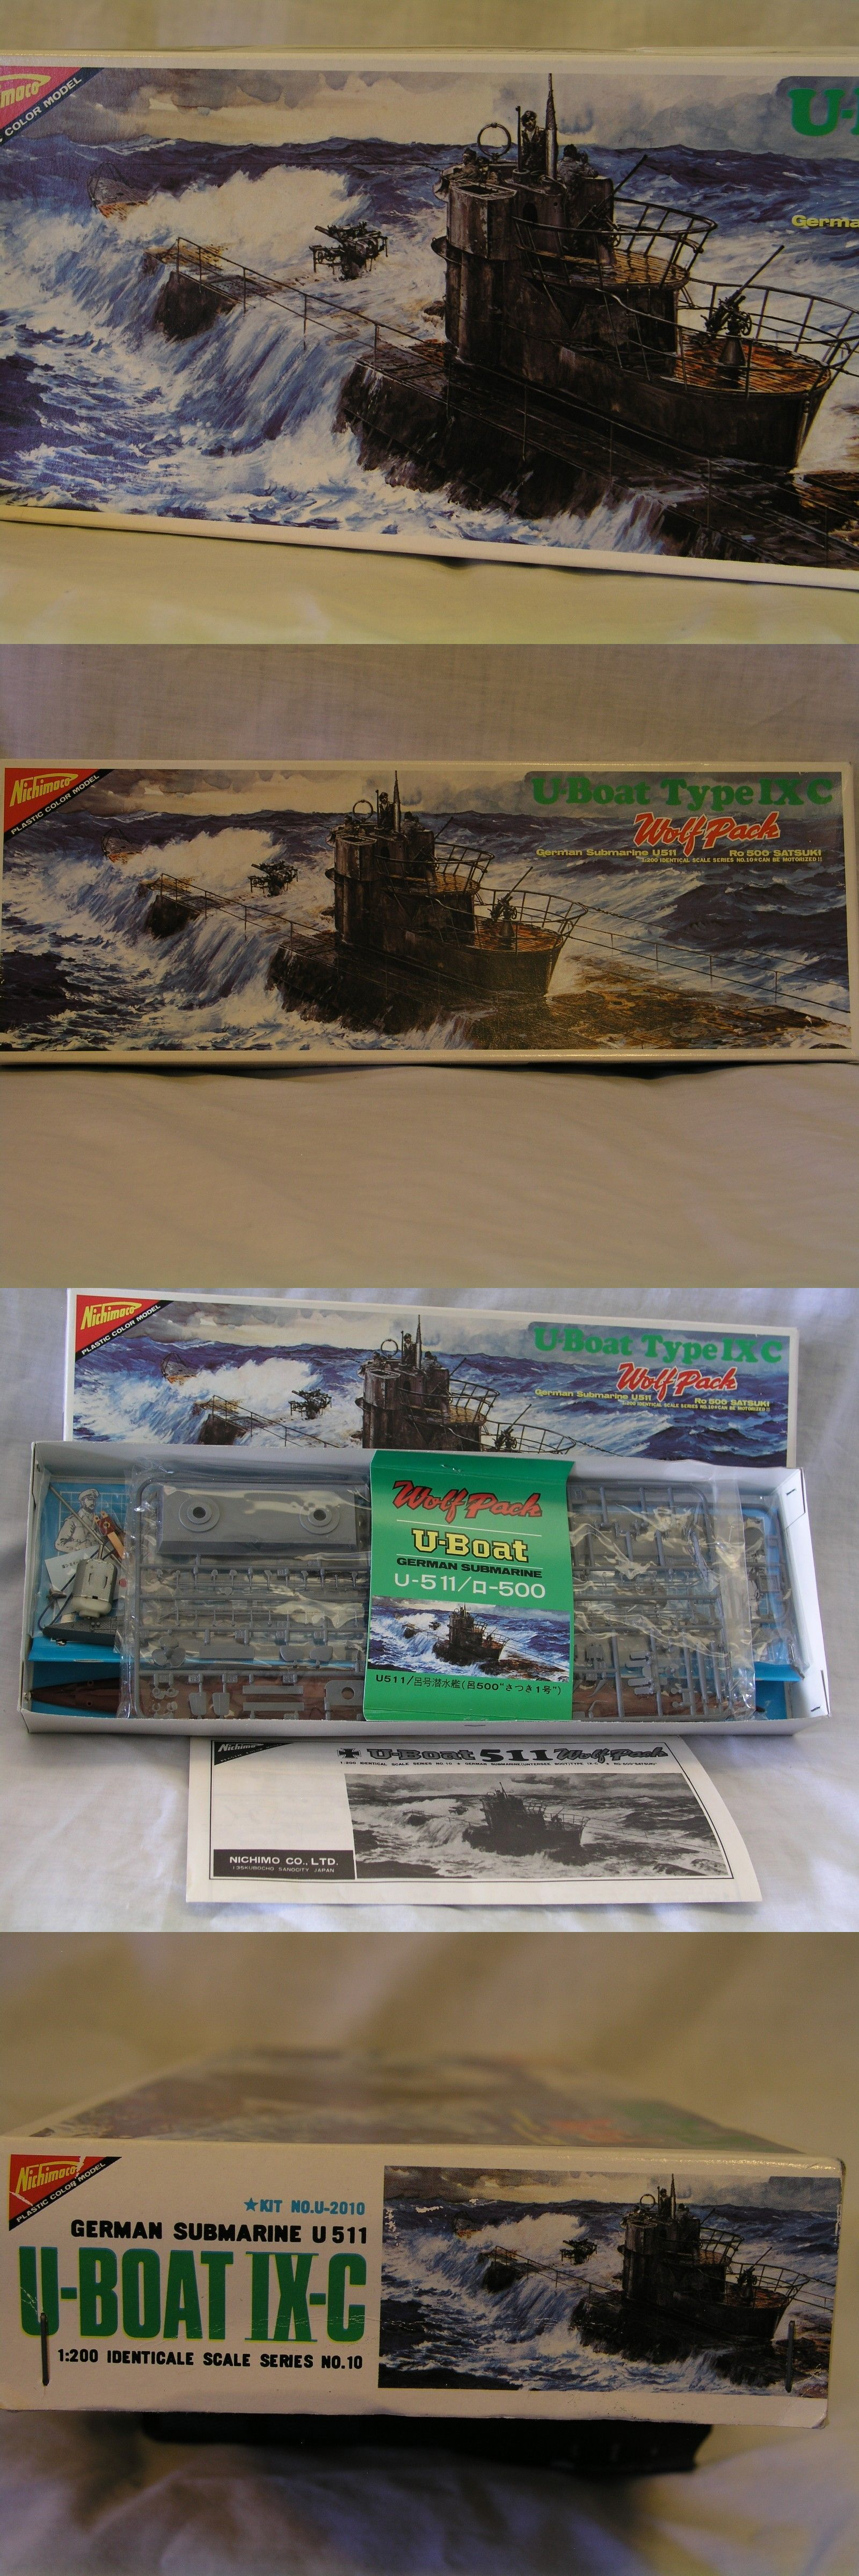 hight resolution of sea 2590 new nichimo 1 200 scale motorized german u boat ixc class u 511 sealed parts buy it now only 32 5 on ebay nichimo scale motorized